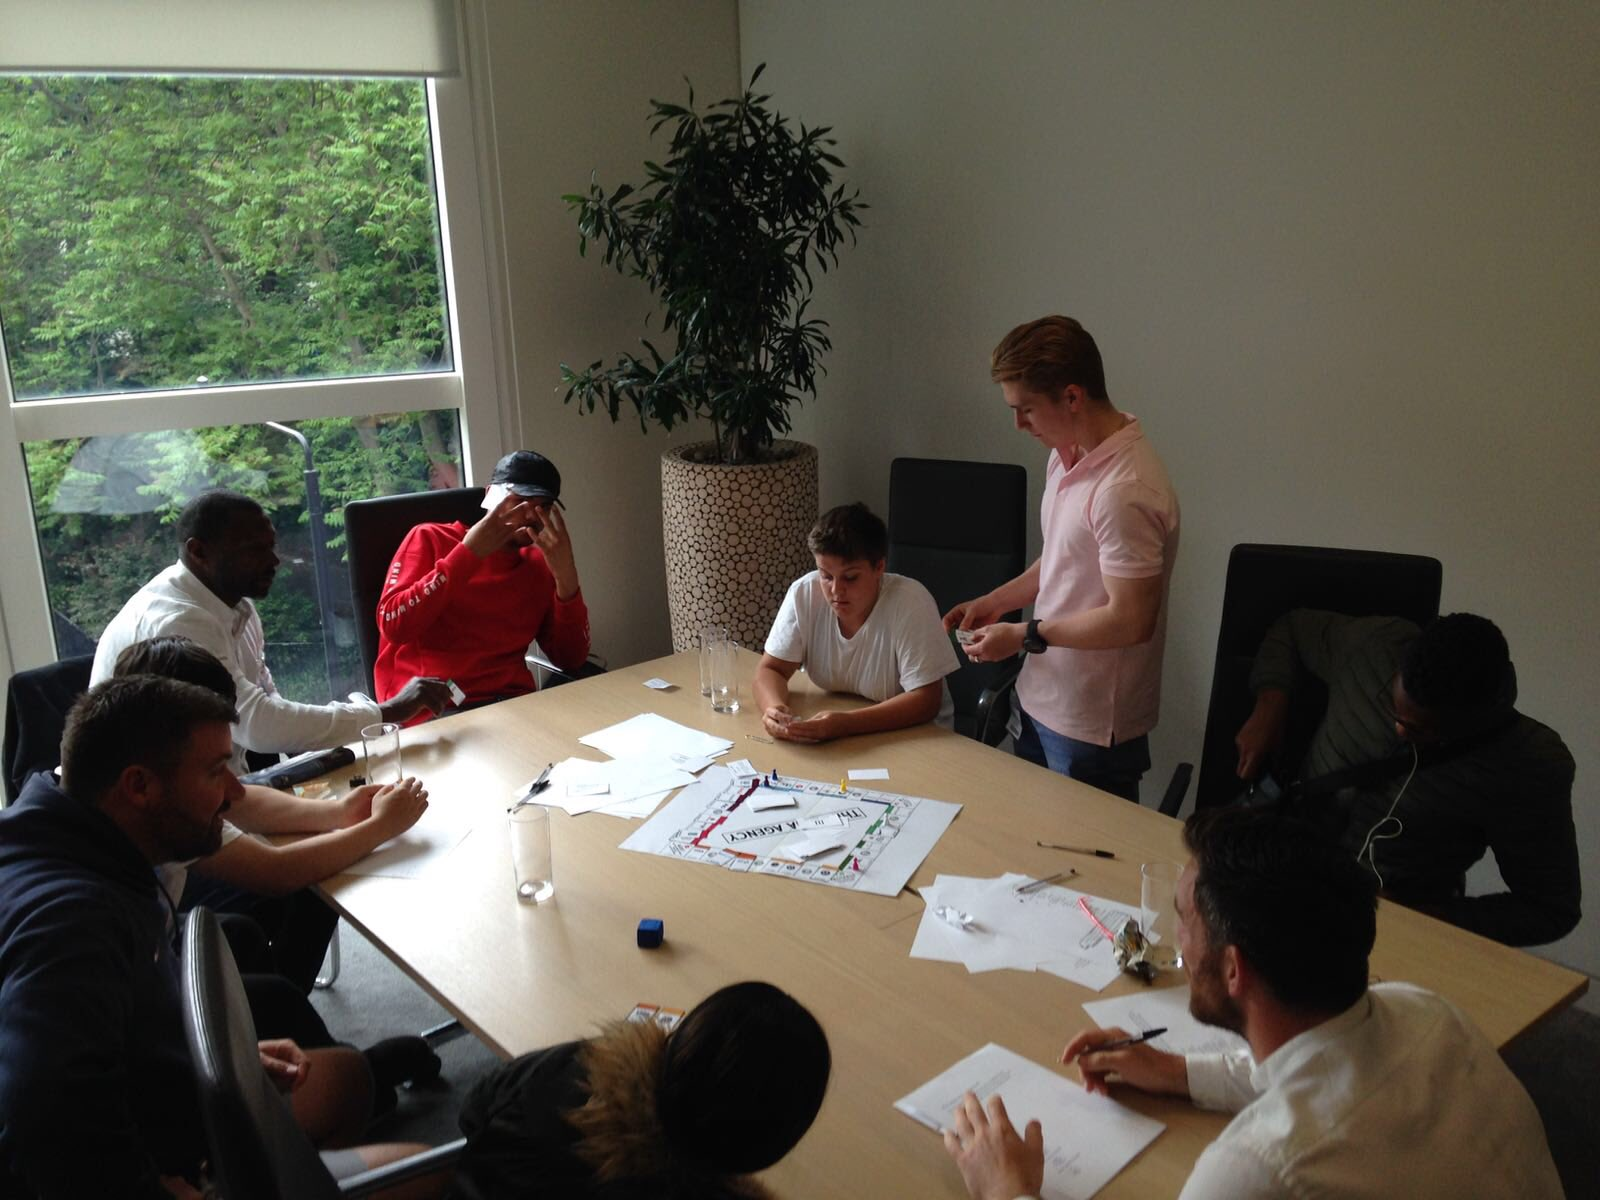 Some of our #RugbyWorks young people playing brand monopoly @GroupMWorldwide today https://t.co/4yEAWfbAZn